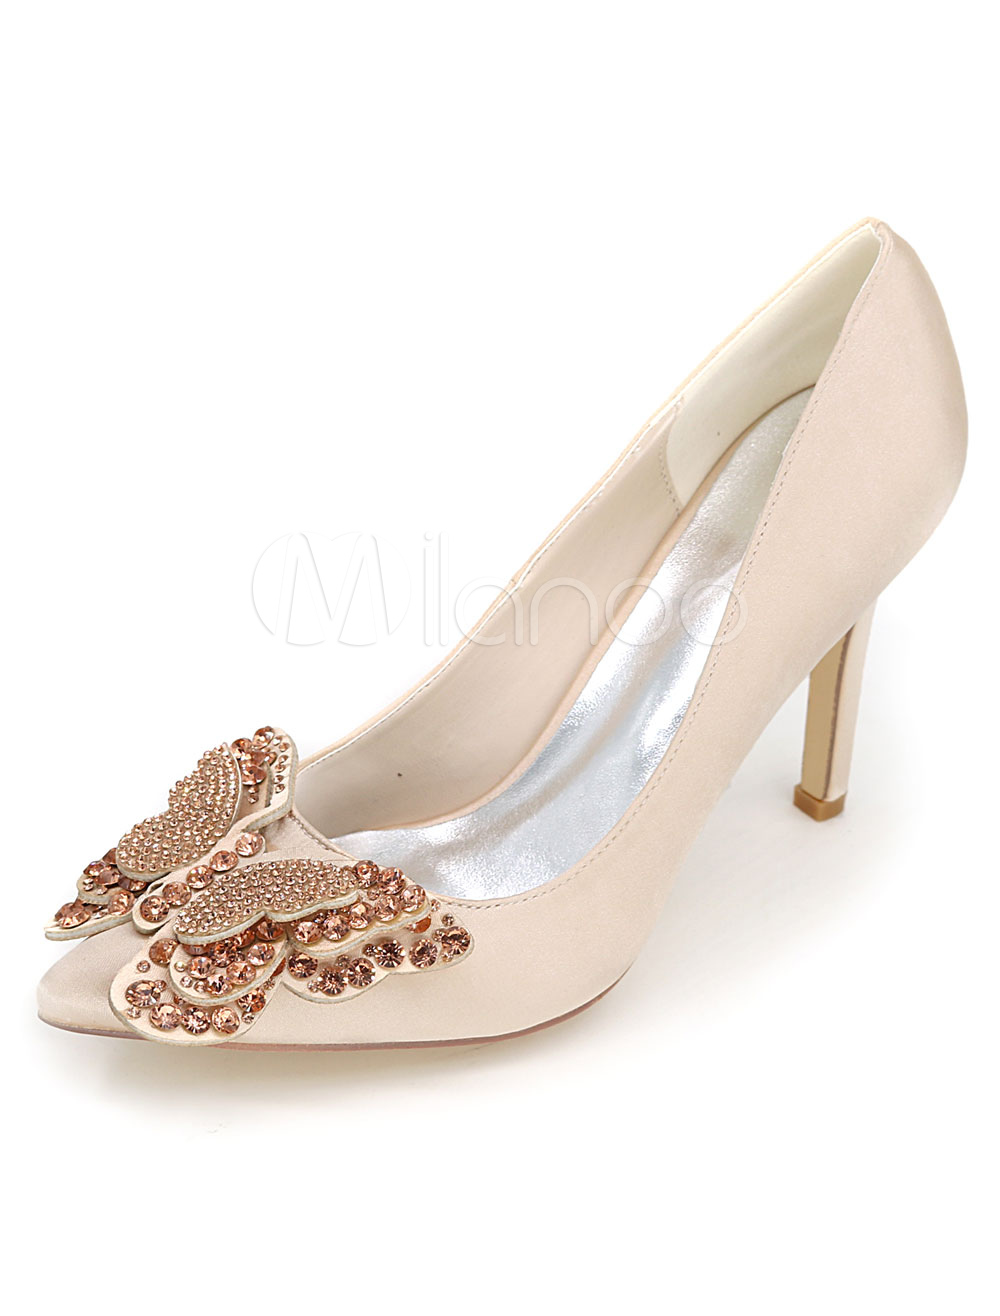 Buy Champagne Wedding Shoes High Heel Pumps Satin Slip On Pointed Toe Rhinestones Butterfly Bridal Shoes for $51.29 in Milanoo store